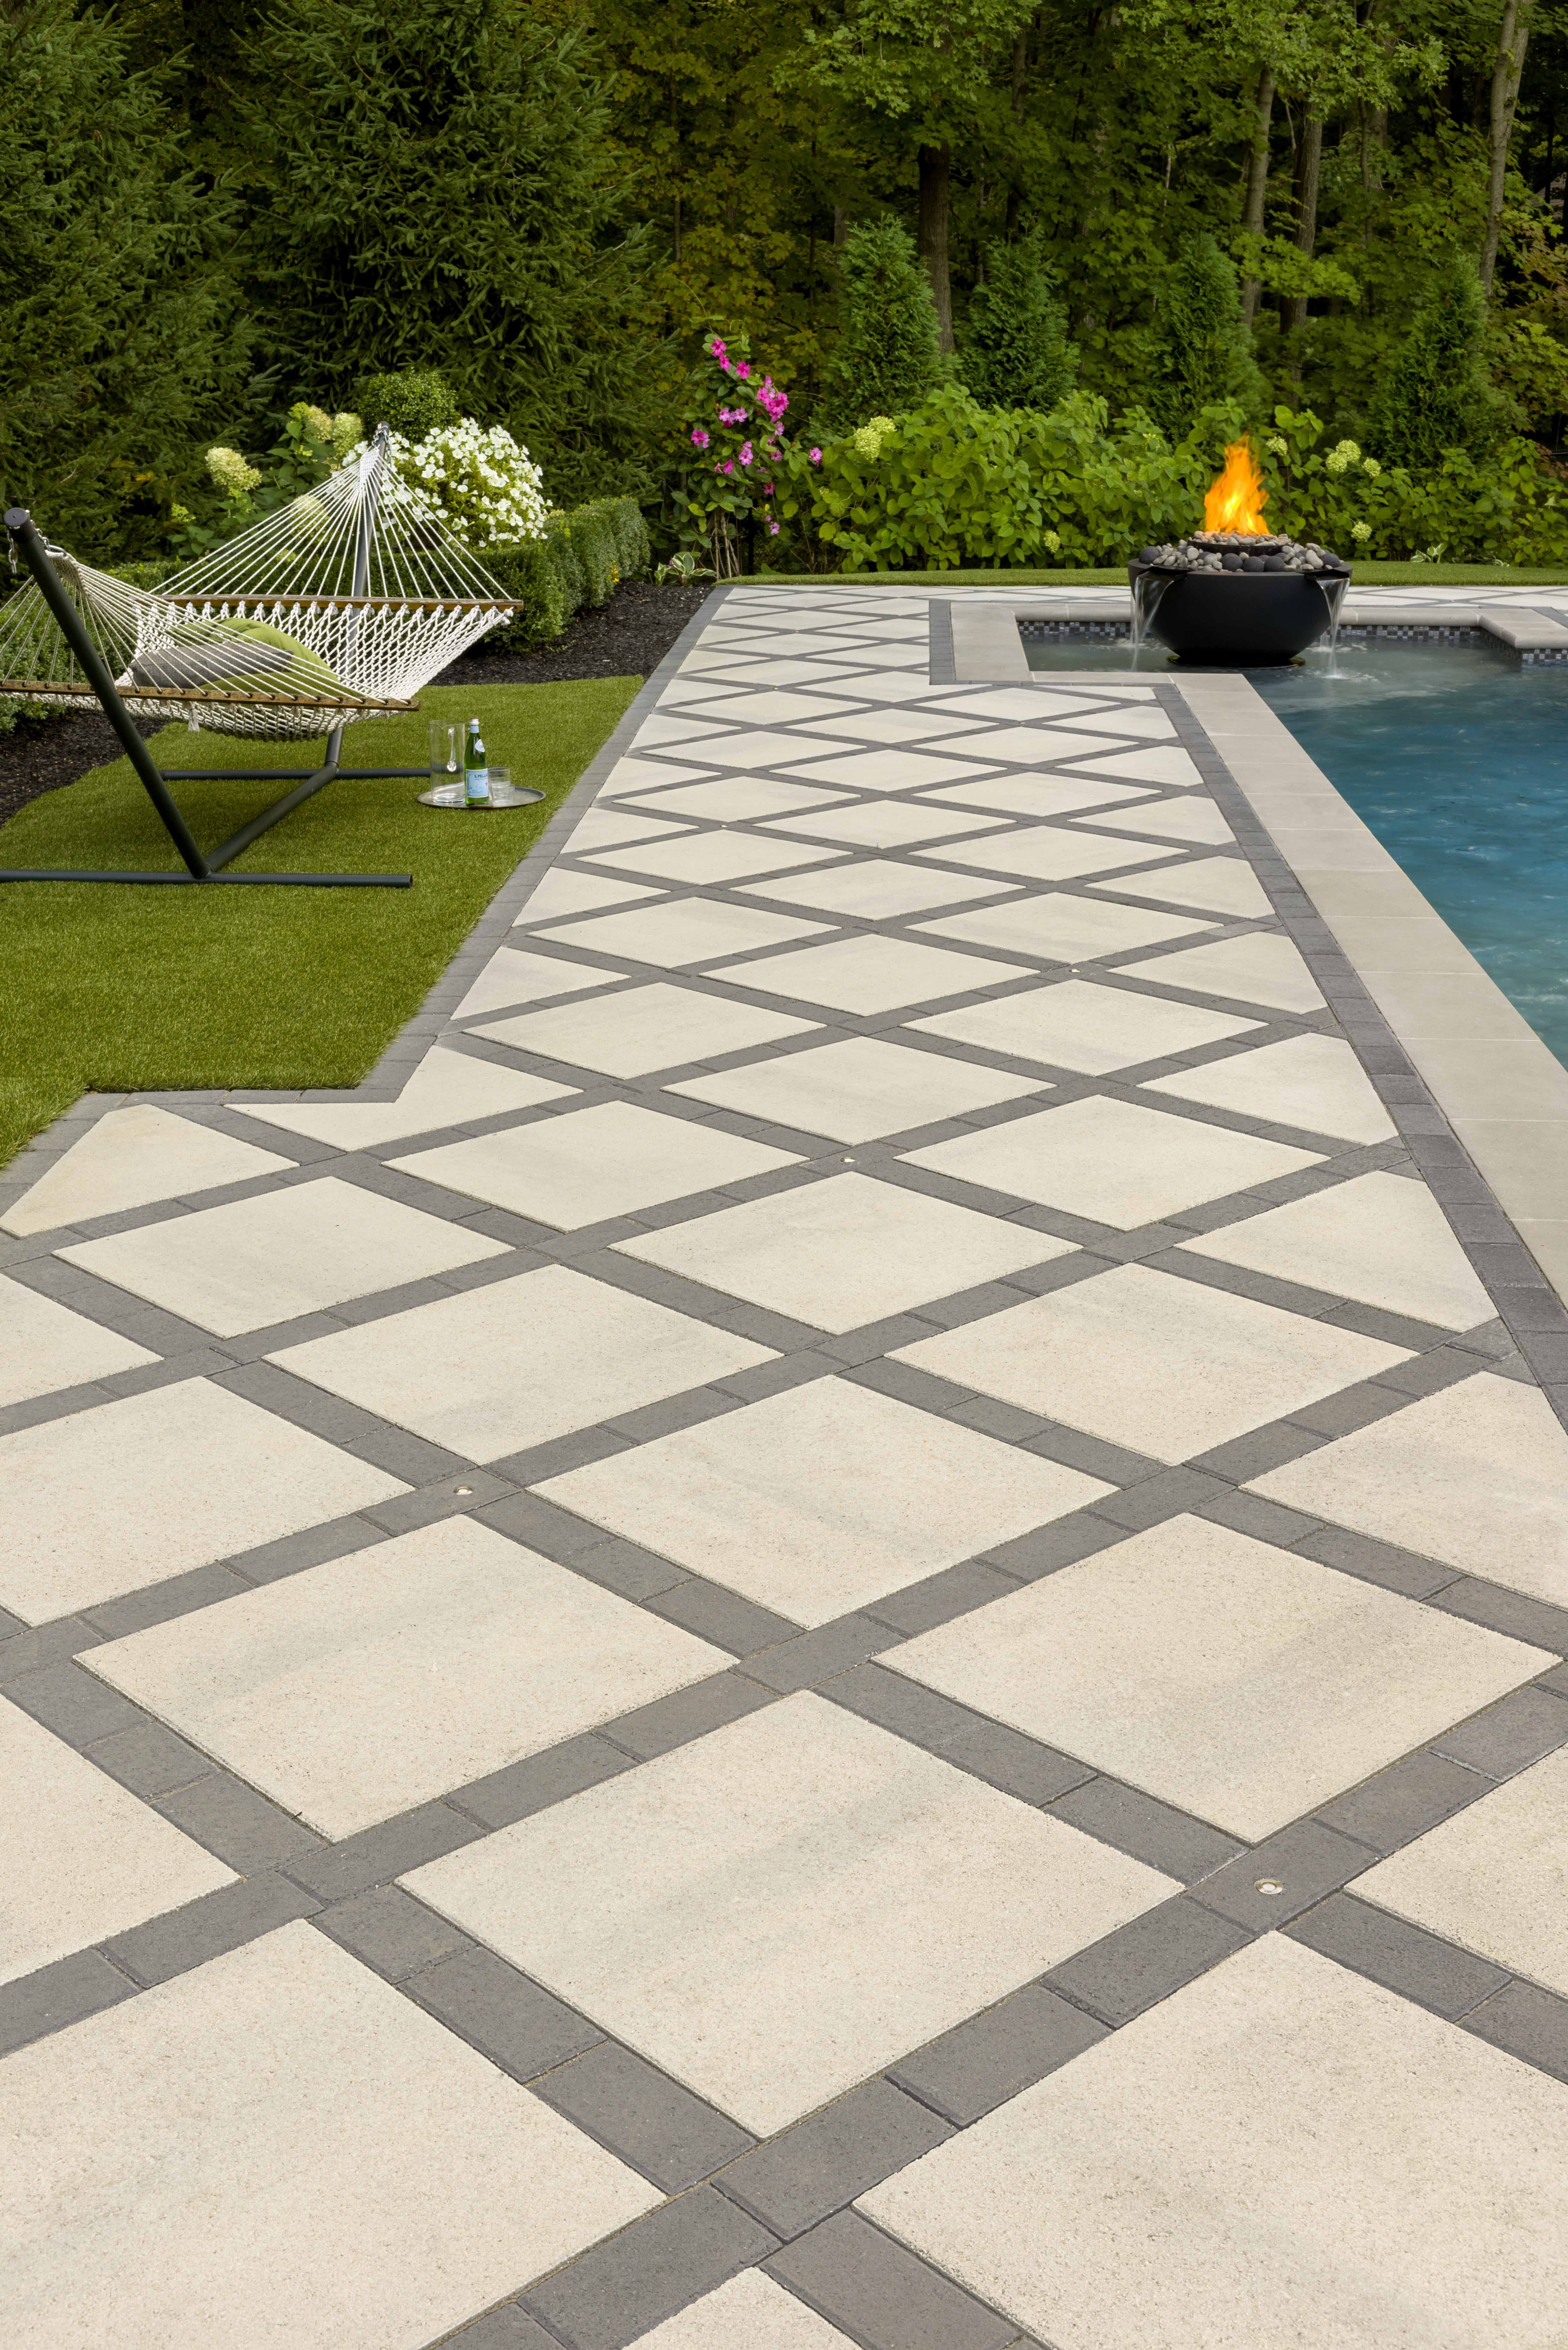 Patio Ideas Backyard Landscaping Designs Patio Pavers Design Backyard Landscaping Backyard landscaping ideas with pavers